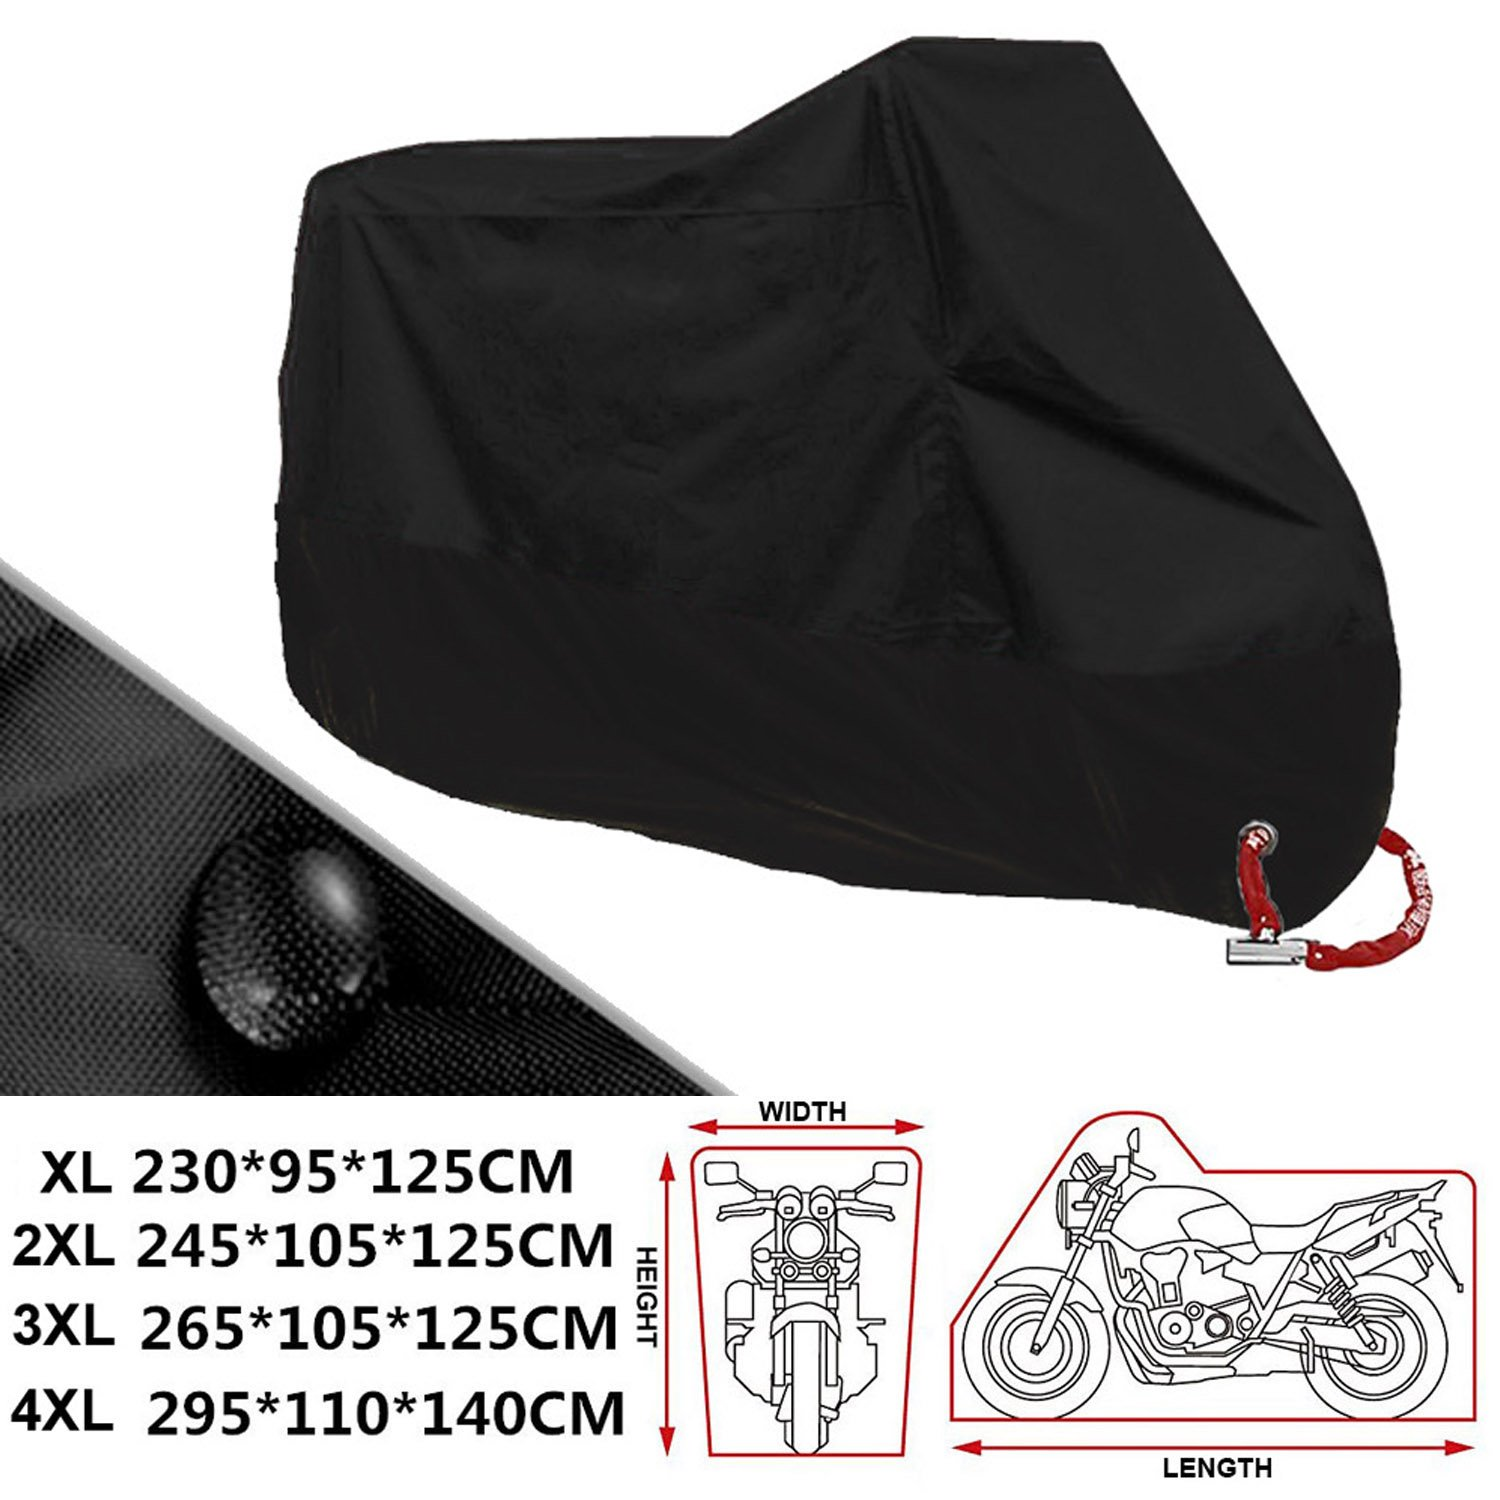 ANFTOP Motorcycle Cover 4XL Motorbike Scooter Cover Black Color White Lock Holes Waterproof UV Protective Cover XXXXL .